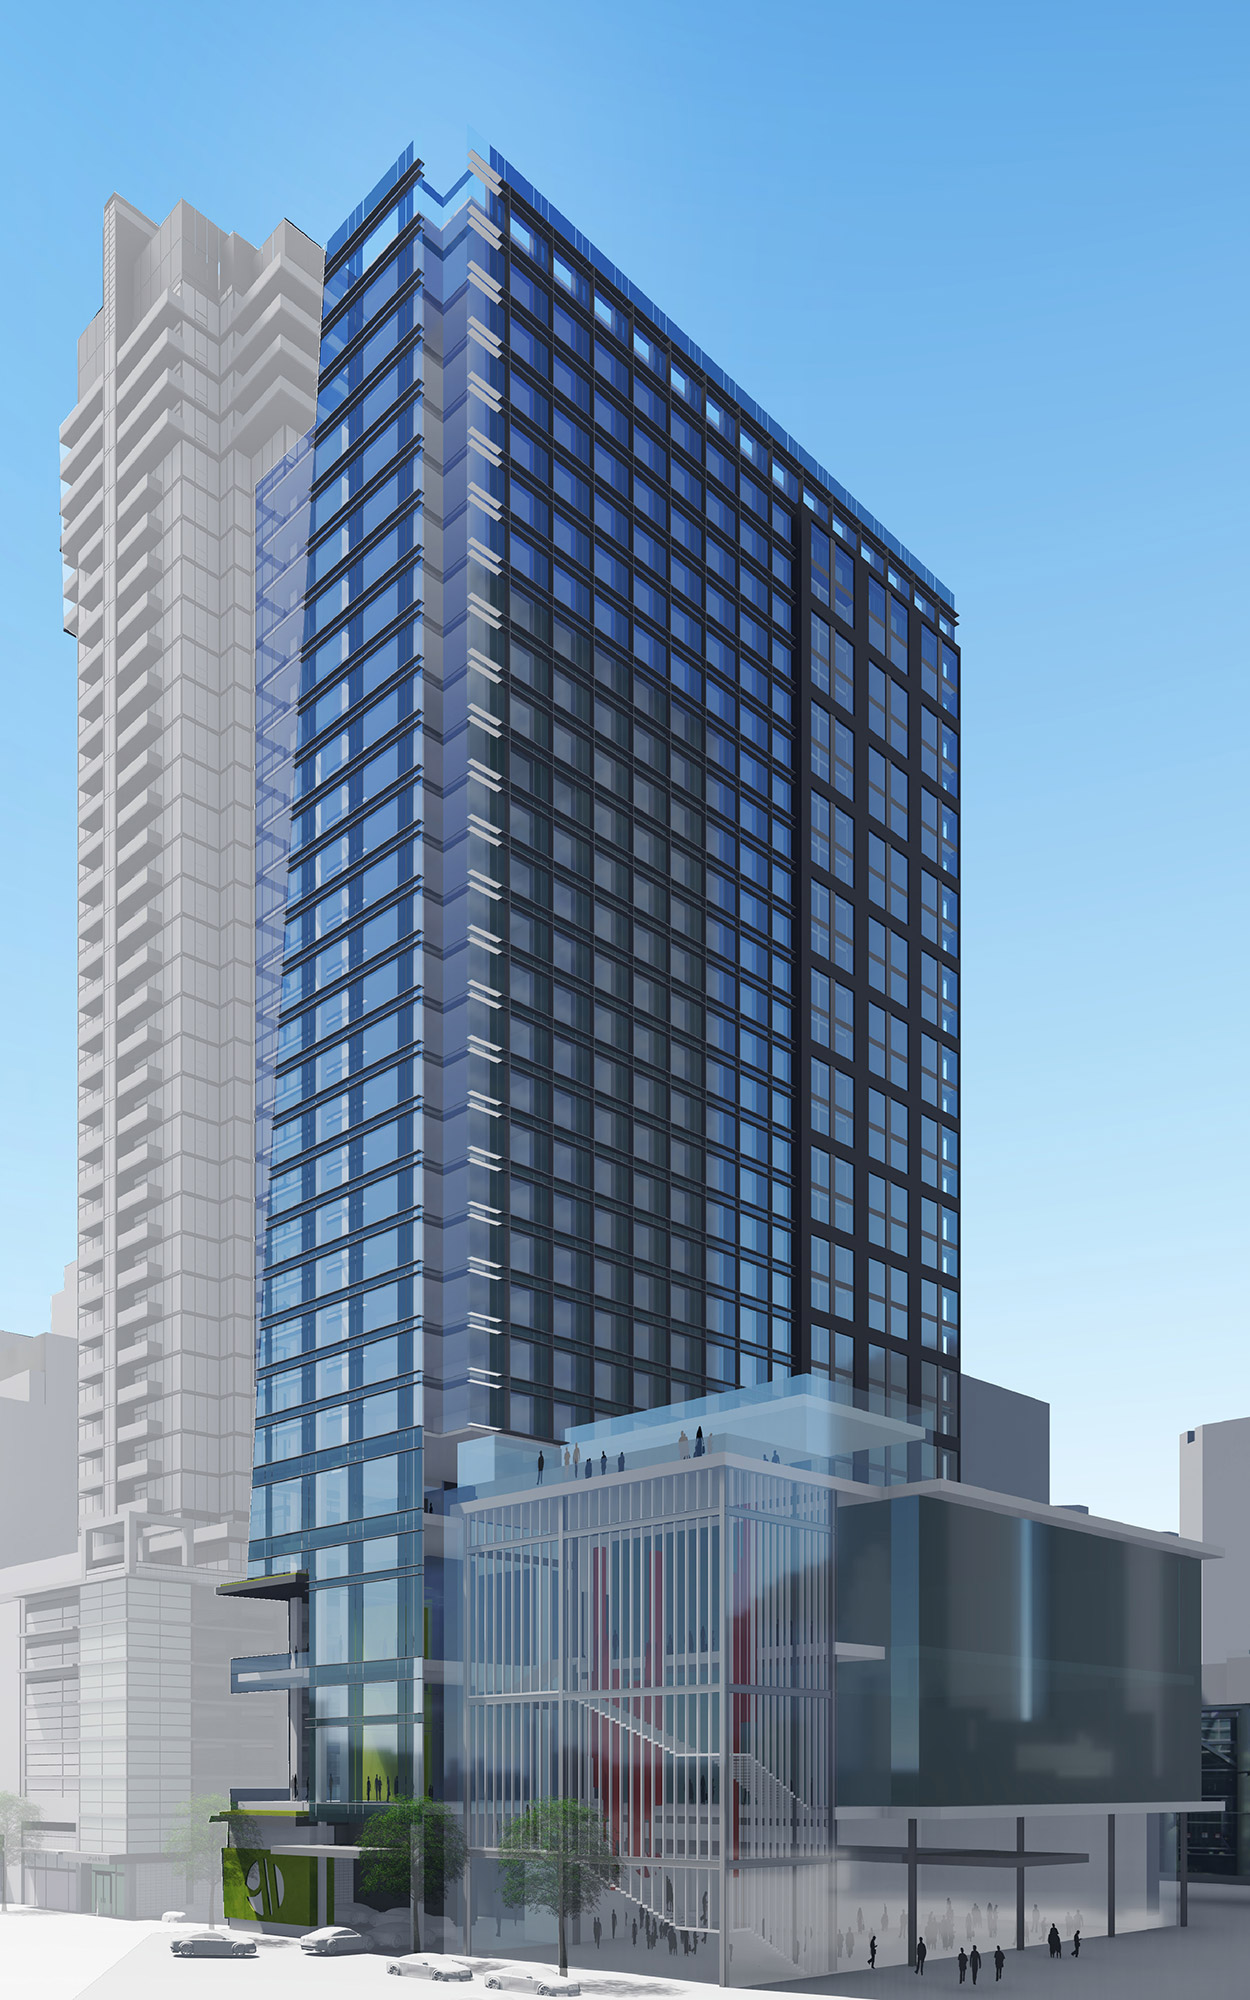 Conceptual rendering of the proposed hotel tower at 14th and Stout, courtesy of Focus Property Group and Stantec